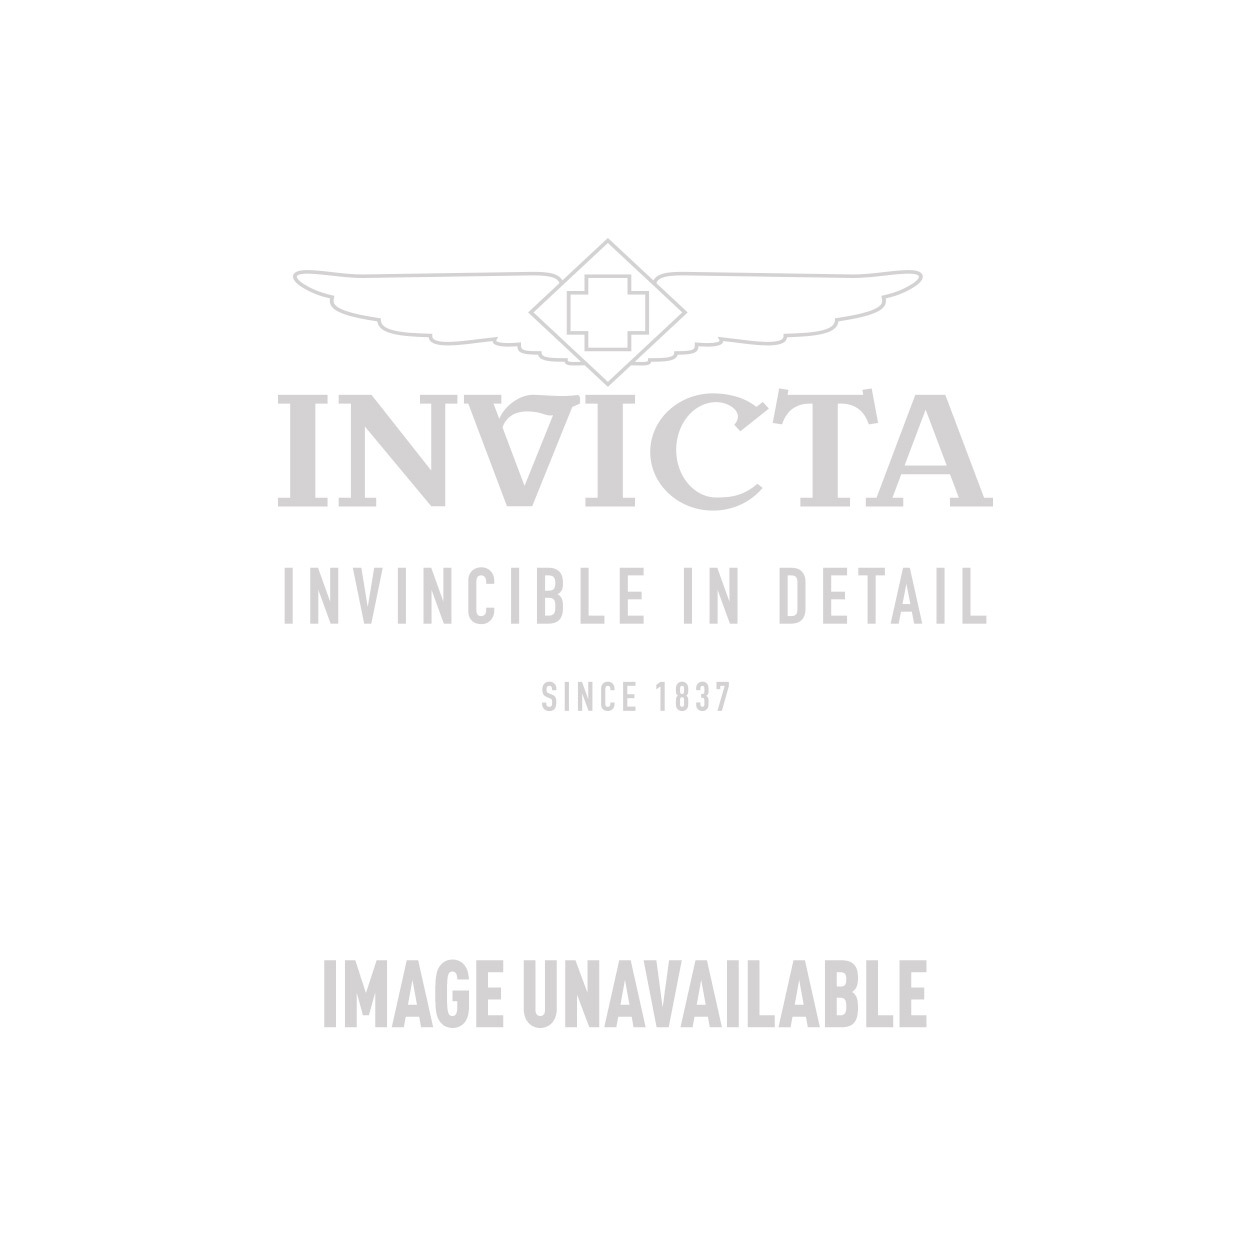 Invicta Reserve Swiss Made Quartz Watch - Rose Gold, Gunmetal case with Rose Gold, Gunmetal tone Stainless Steel band - Model 12986